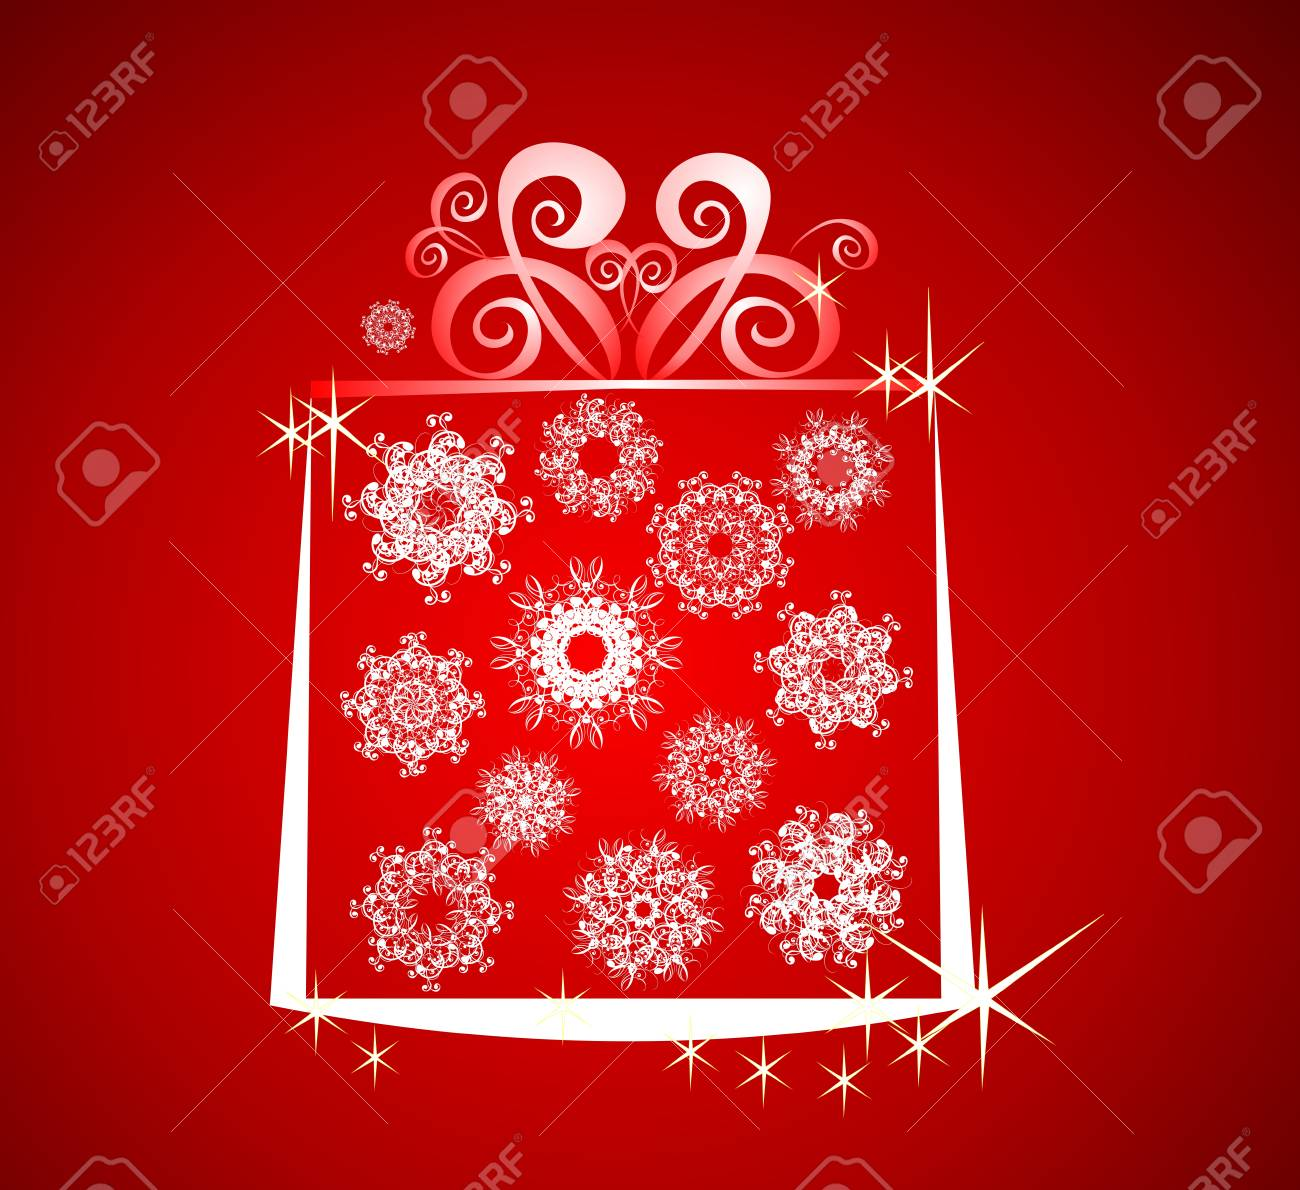 Christmas illustration with gift box and snowflake on red background Stock Vector - 8157126